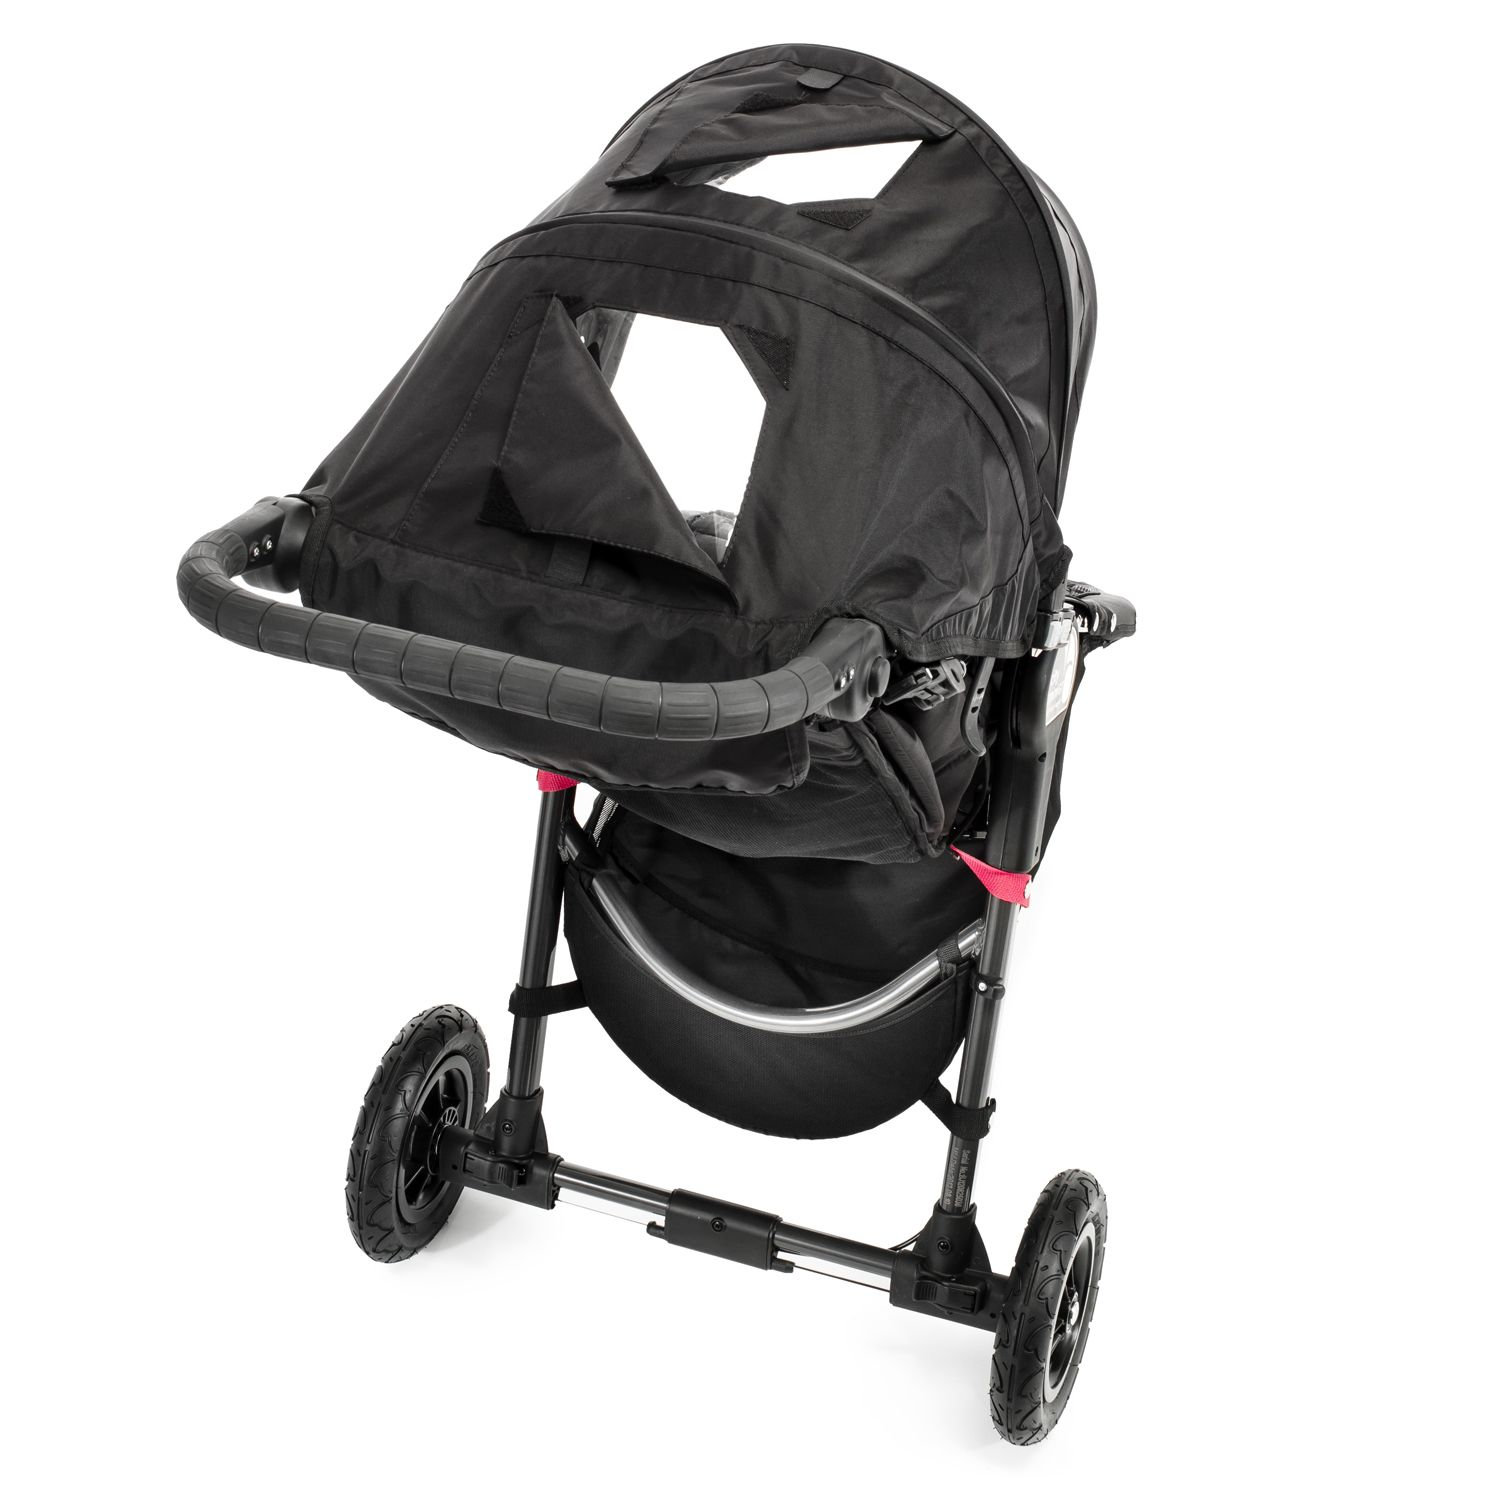 a top view of the Baby Jogger City Mini GT Single Stroller showing the windows